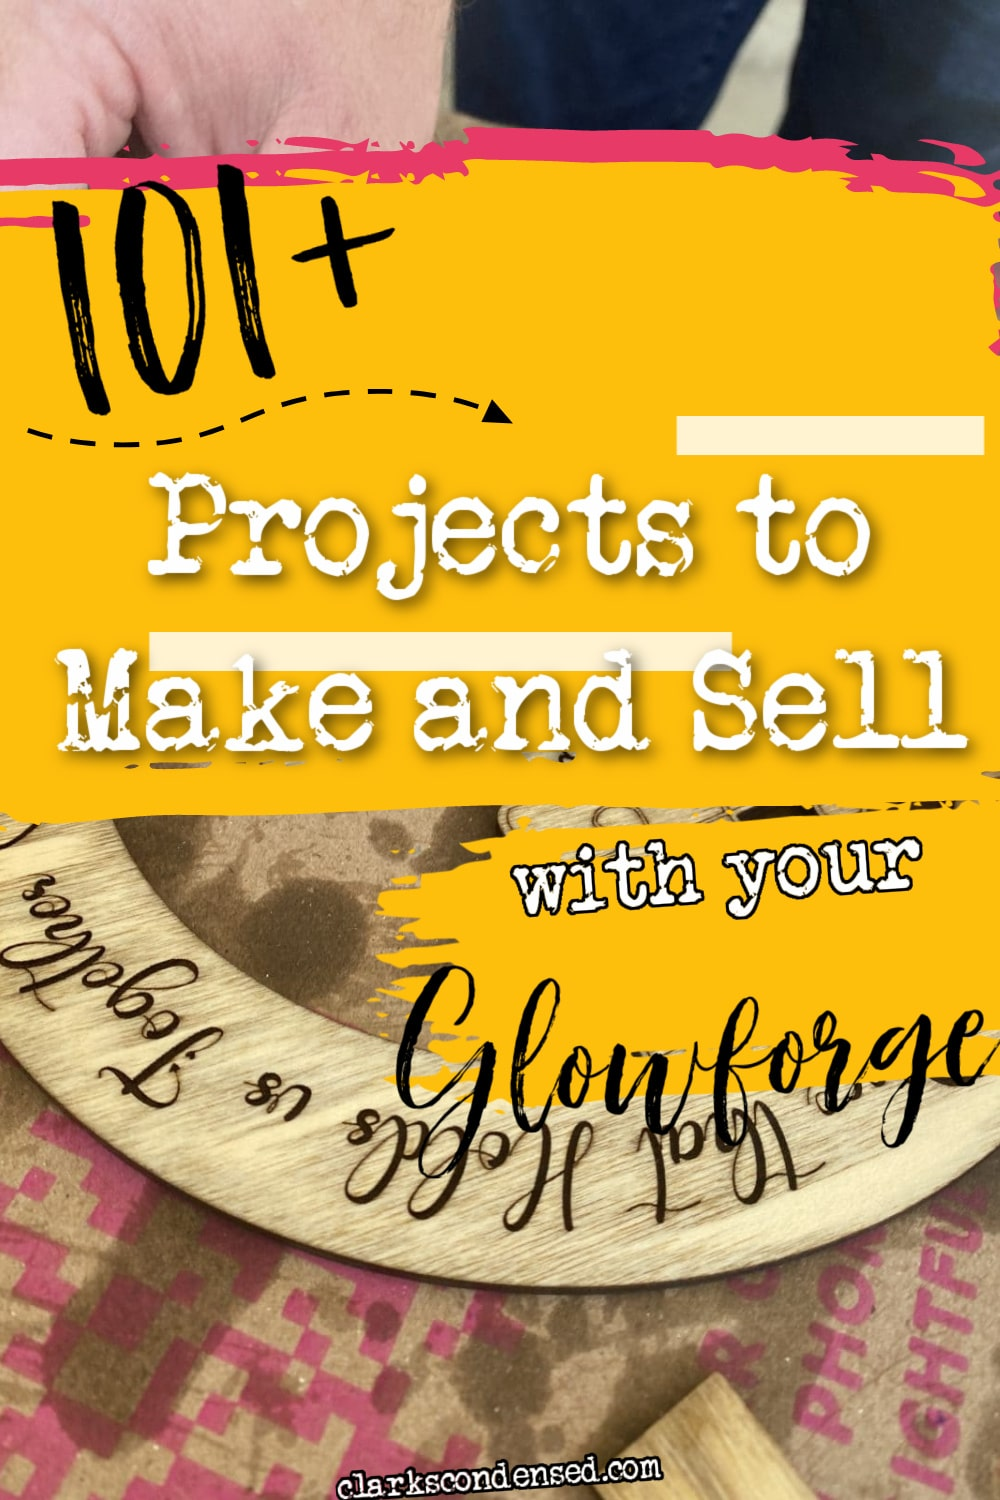 A Glowforge laser cutter has SO many options - but what Glowforge projects are the best to make? In this post, we share over 100 great ideas for Glowforge projects that you can make and sell for your small business. WE